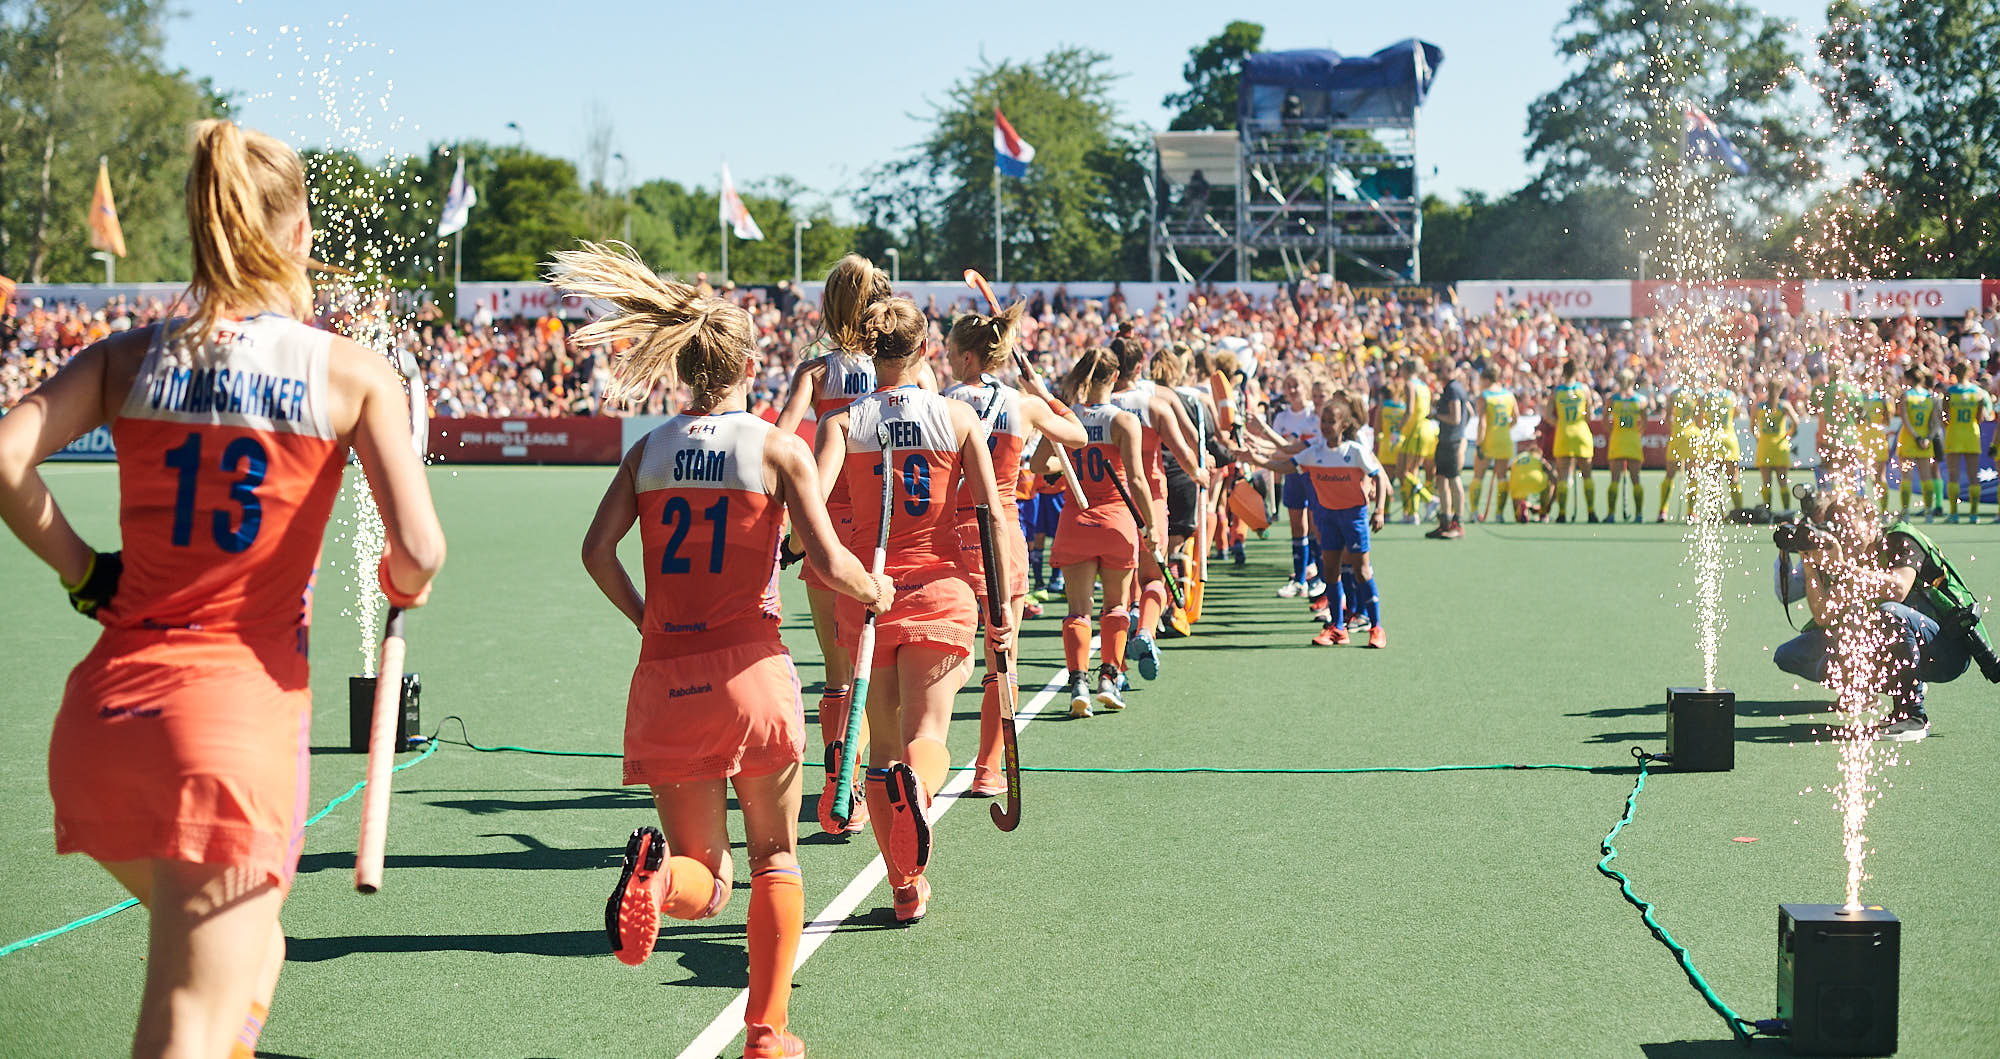 Holland national hockey team players before FIH Pro league finals in Amsterdam